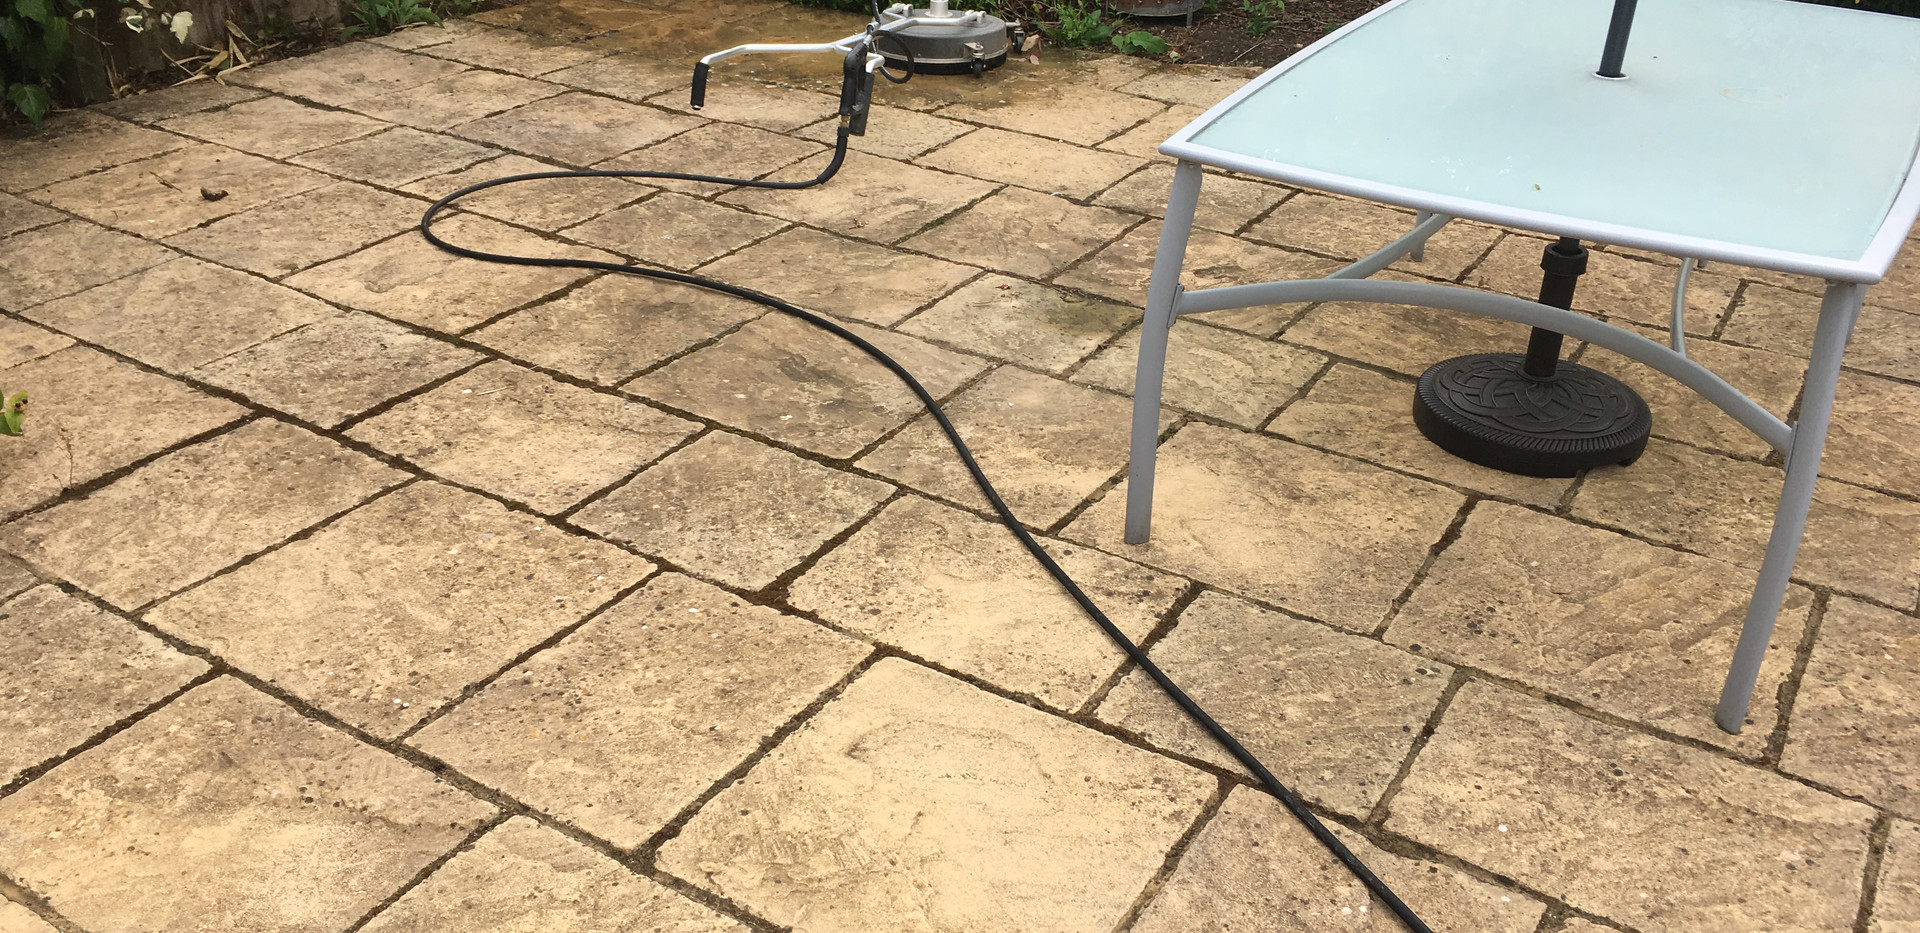 Patio cleaniong Lichen removal